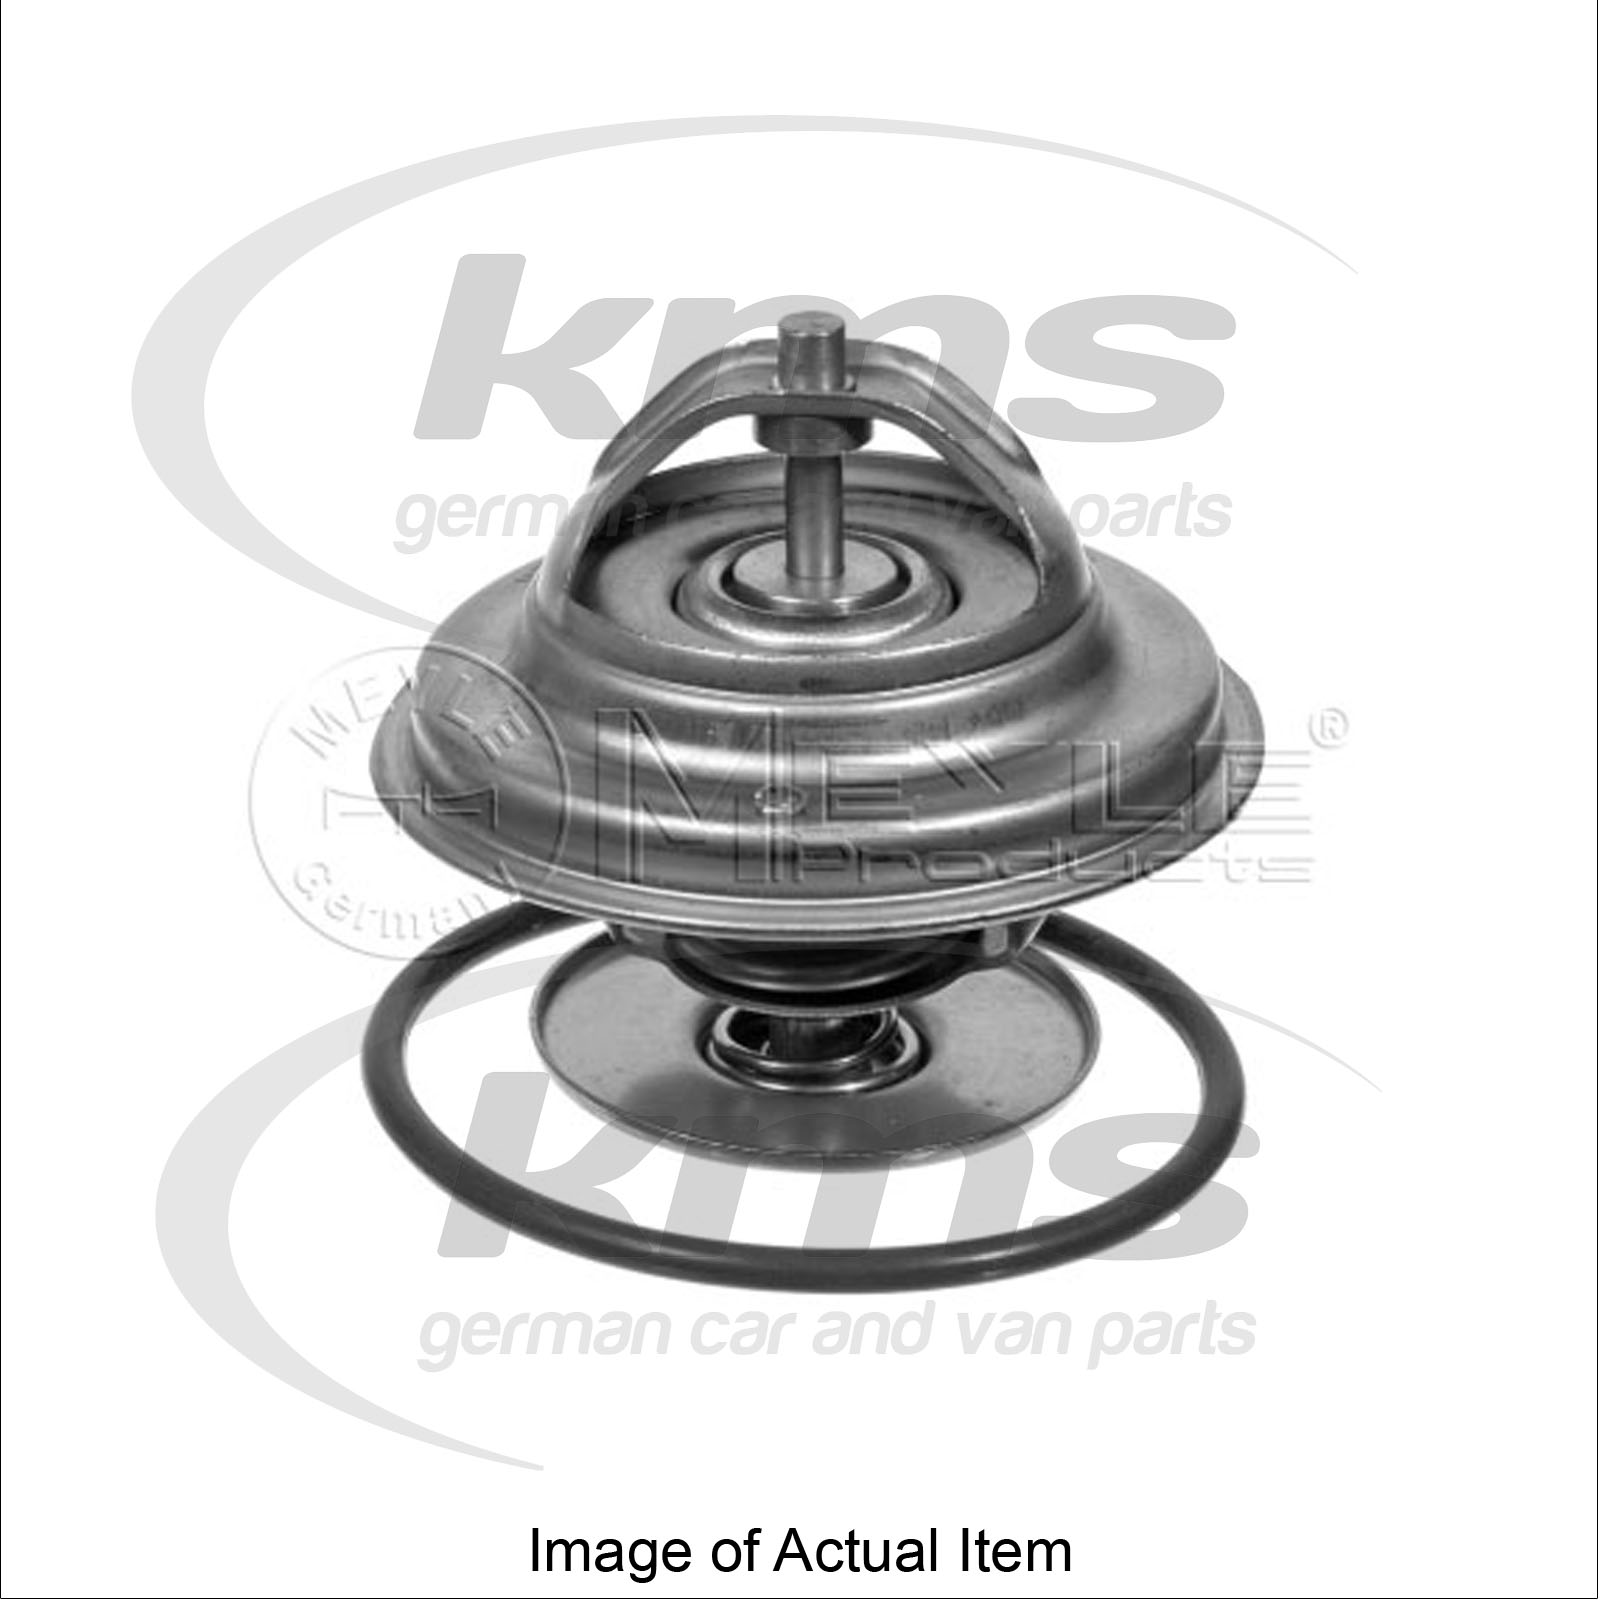 Thermostat for coolant mercedes 190 w201 e 1 8 for Mercedes benz thermostat